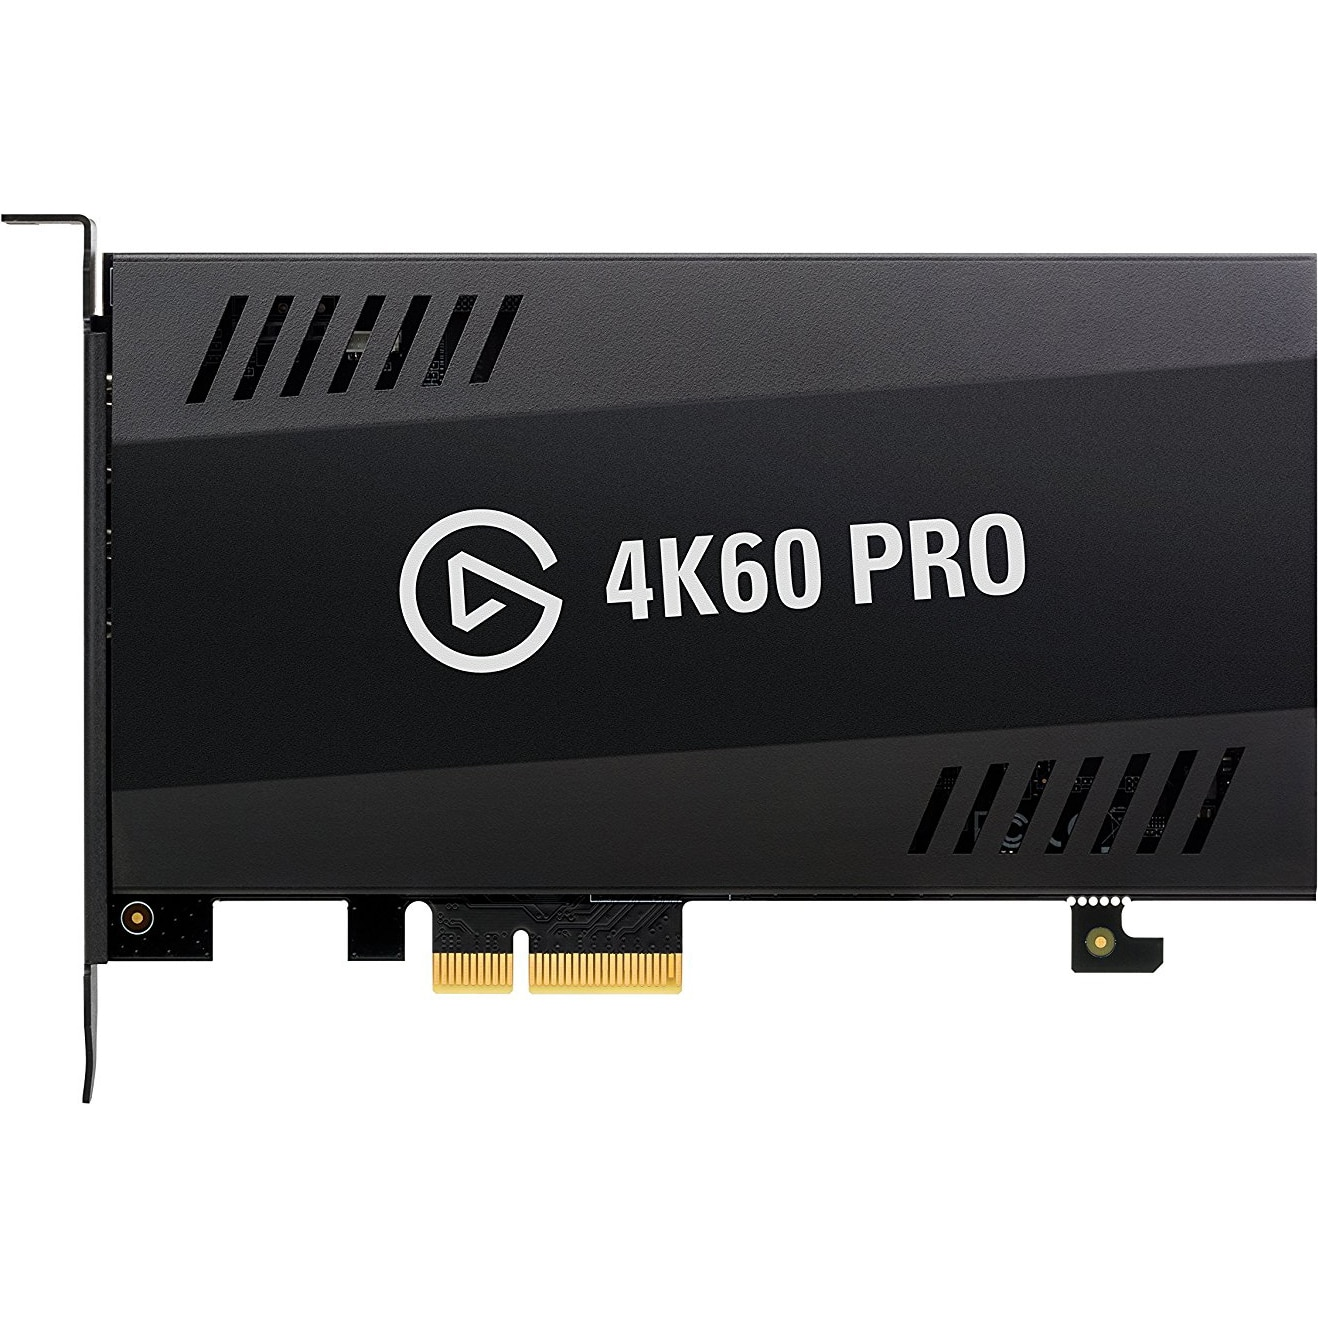 Fotografie Dispozitiv de captura ELGATO GAME CAPTURE 4K60 PRO